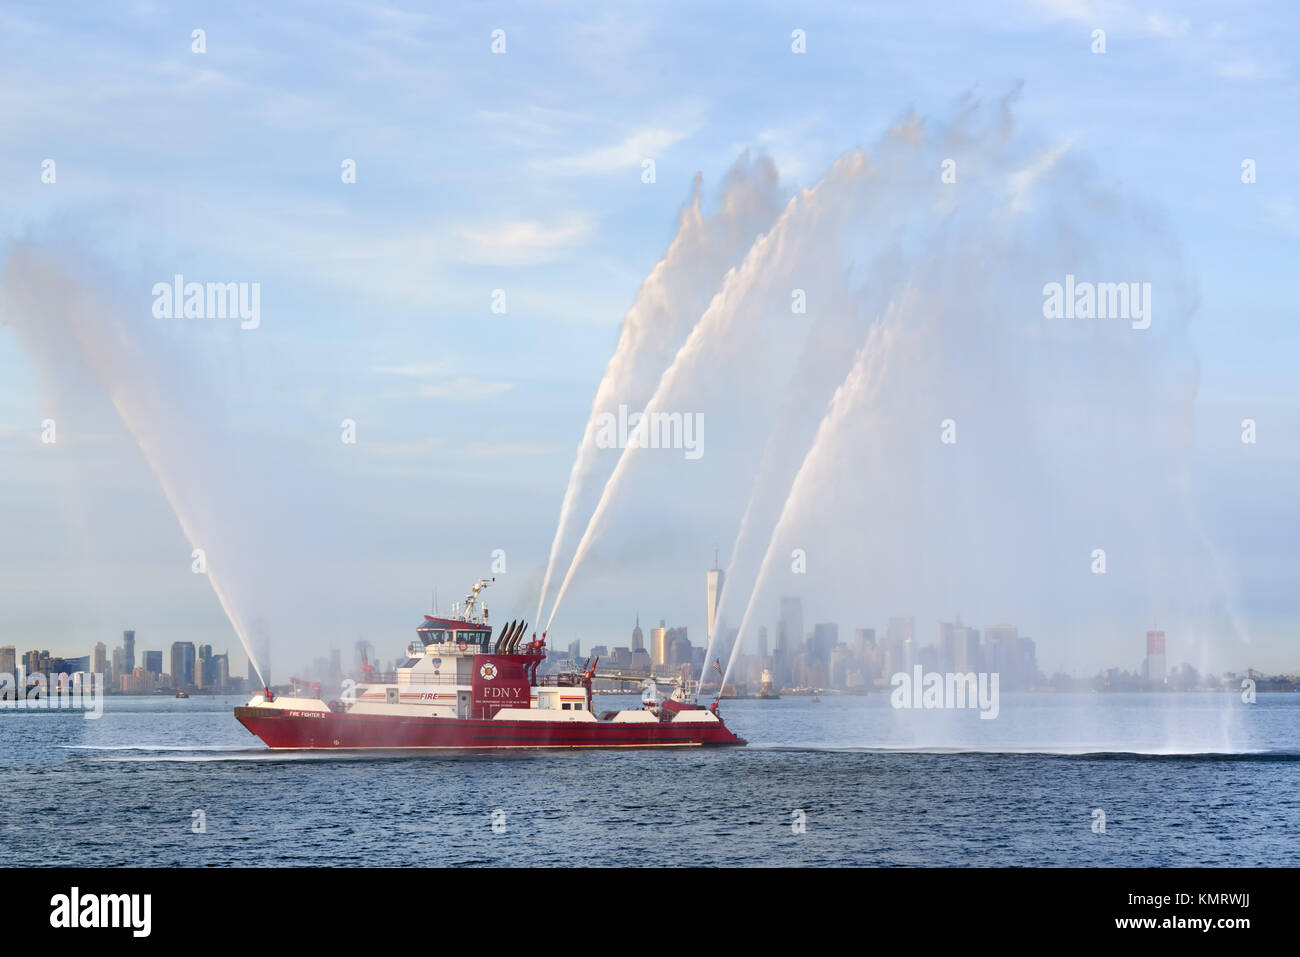 Fire Fighter II fireboat with waterjets at full power in front of Lower Manhattan (including One World Trade Center) - Stock Image